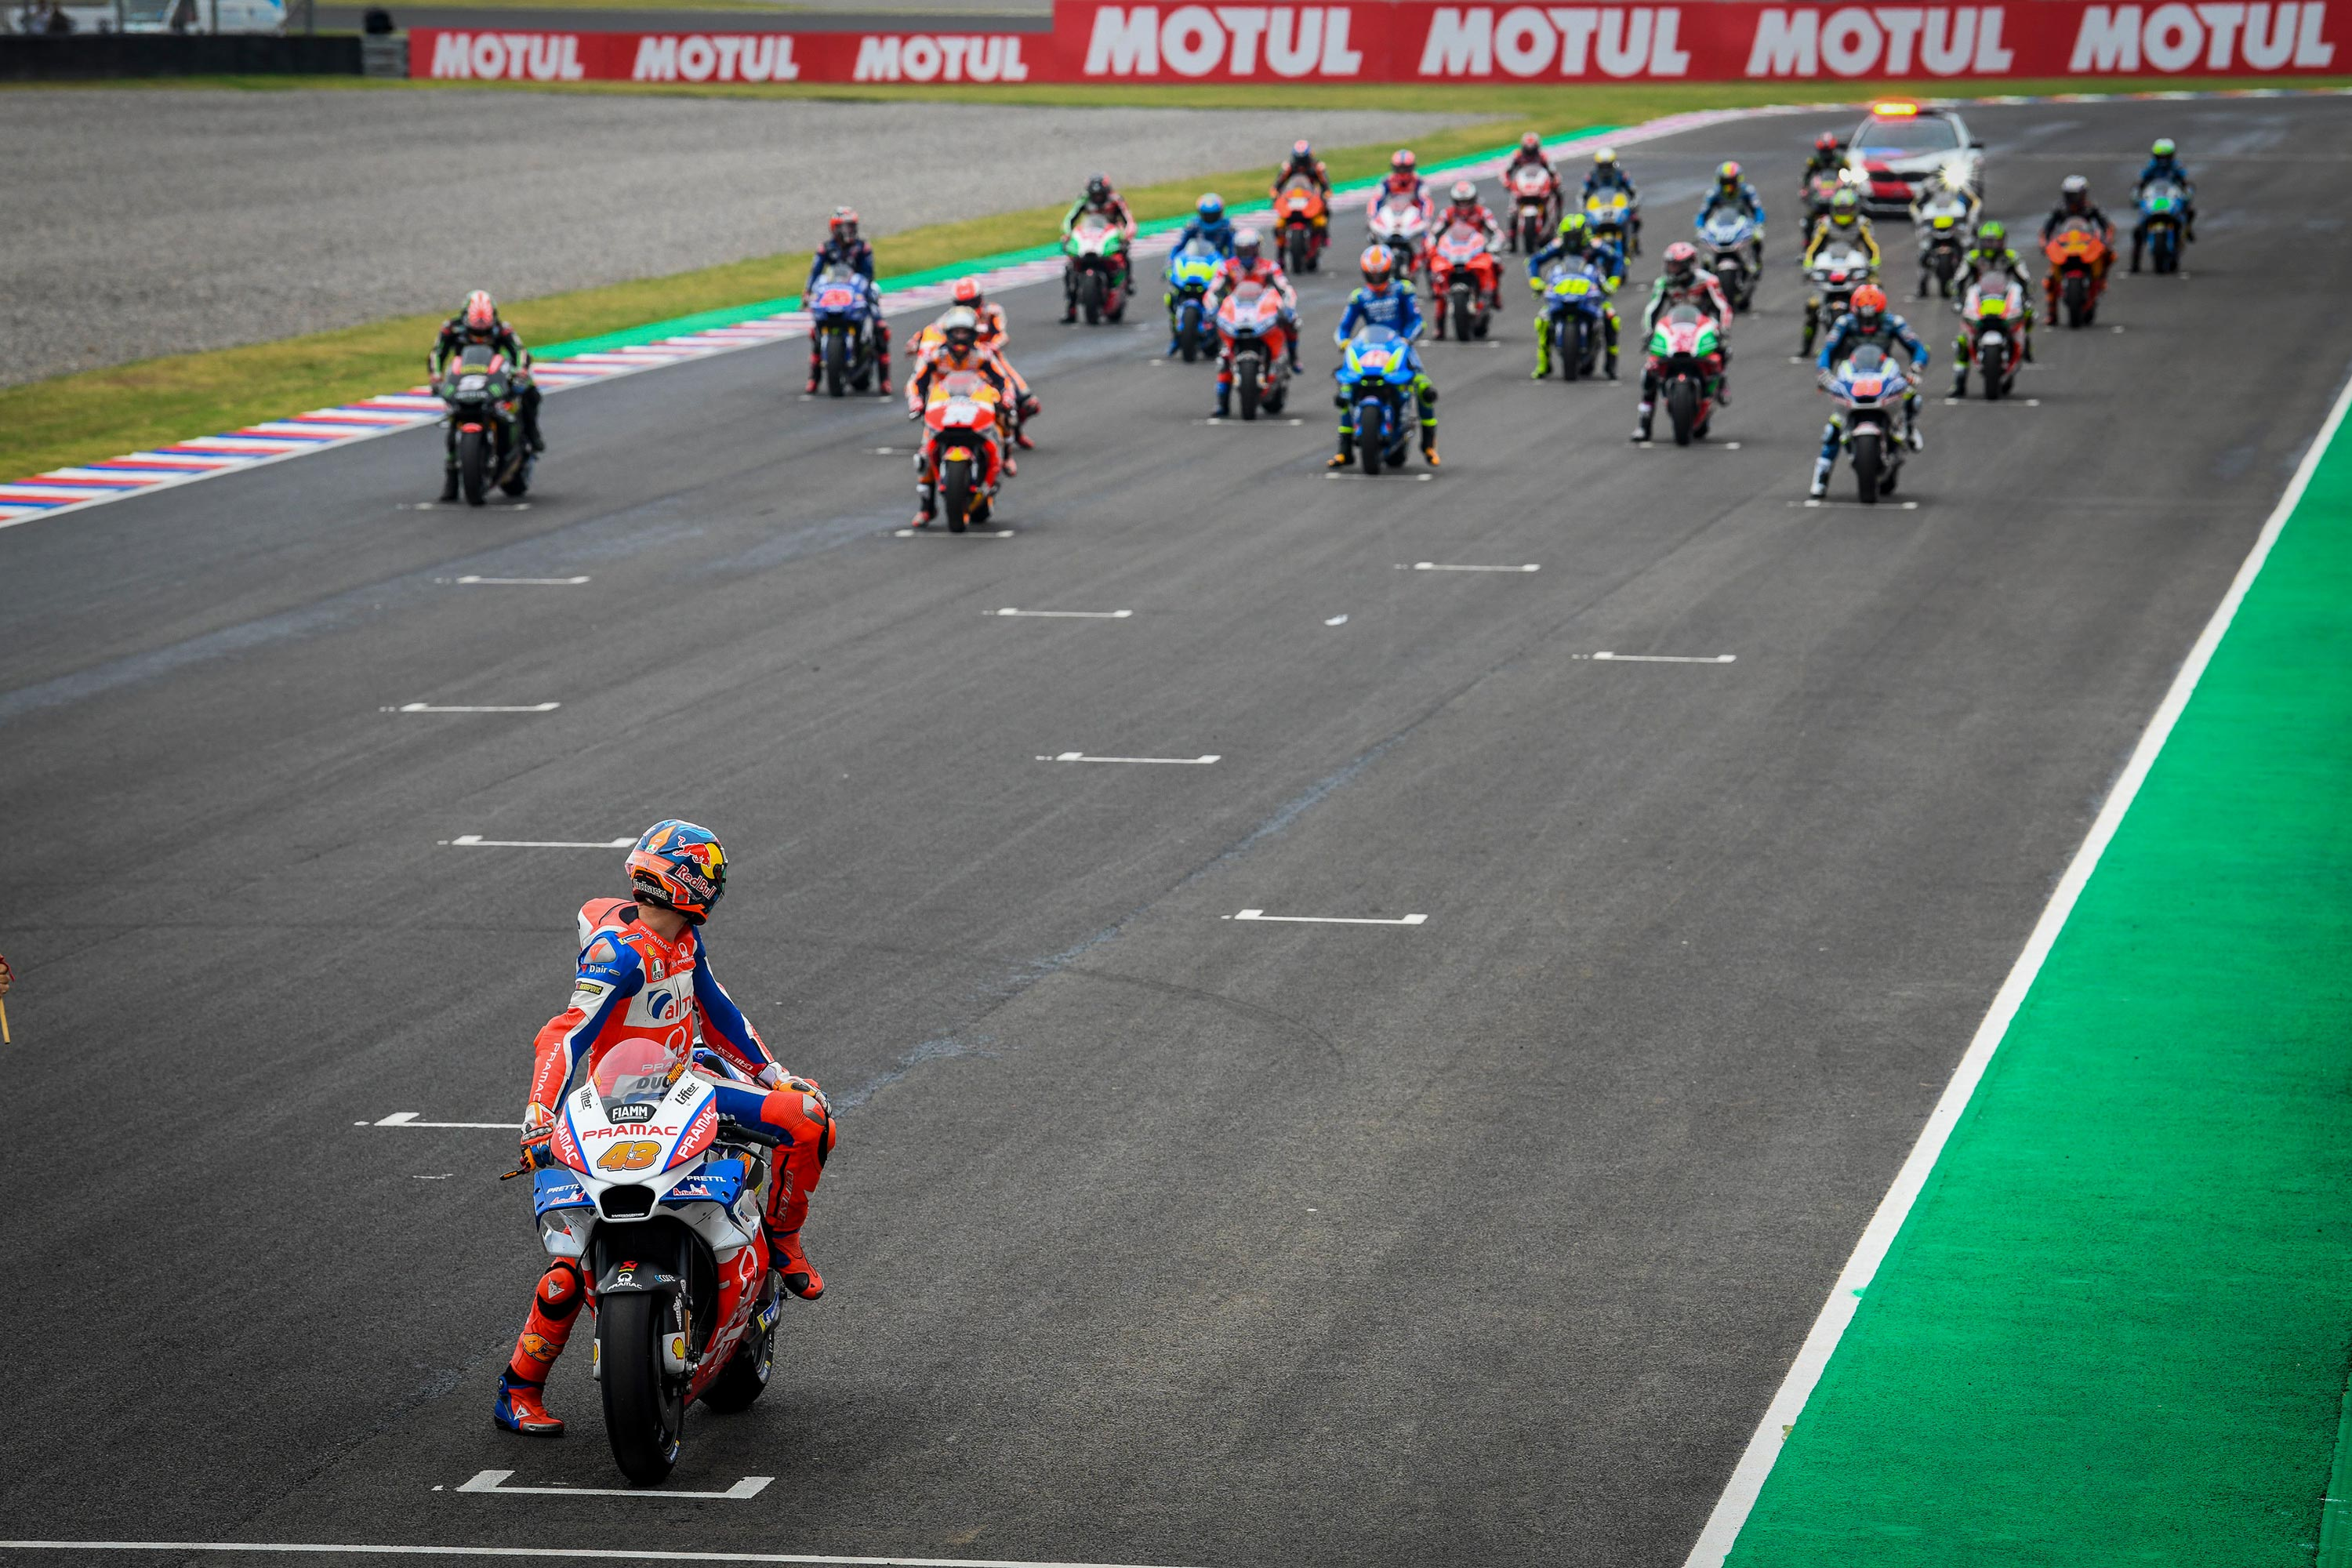 On Saturday After Qualifying I Wrote About How One Of Motorcycle Racings Defining Characteristics Is Its Unpredictability That Was Written In Response To